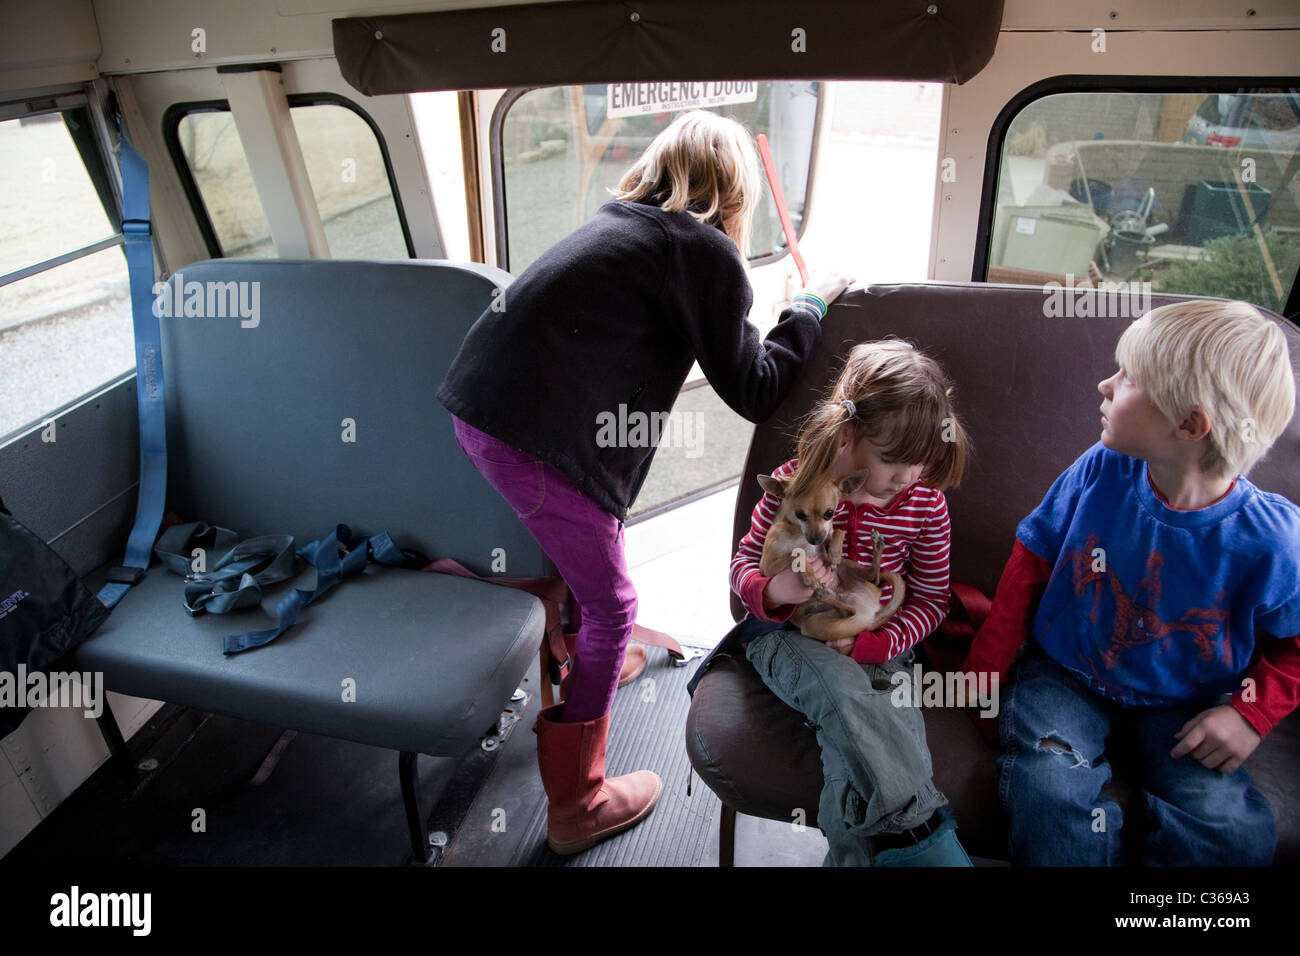 Children Exiting A School Bus Girl Holding A Chihuahua Stock Photo